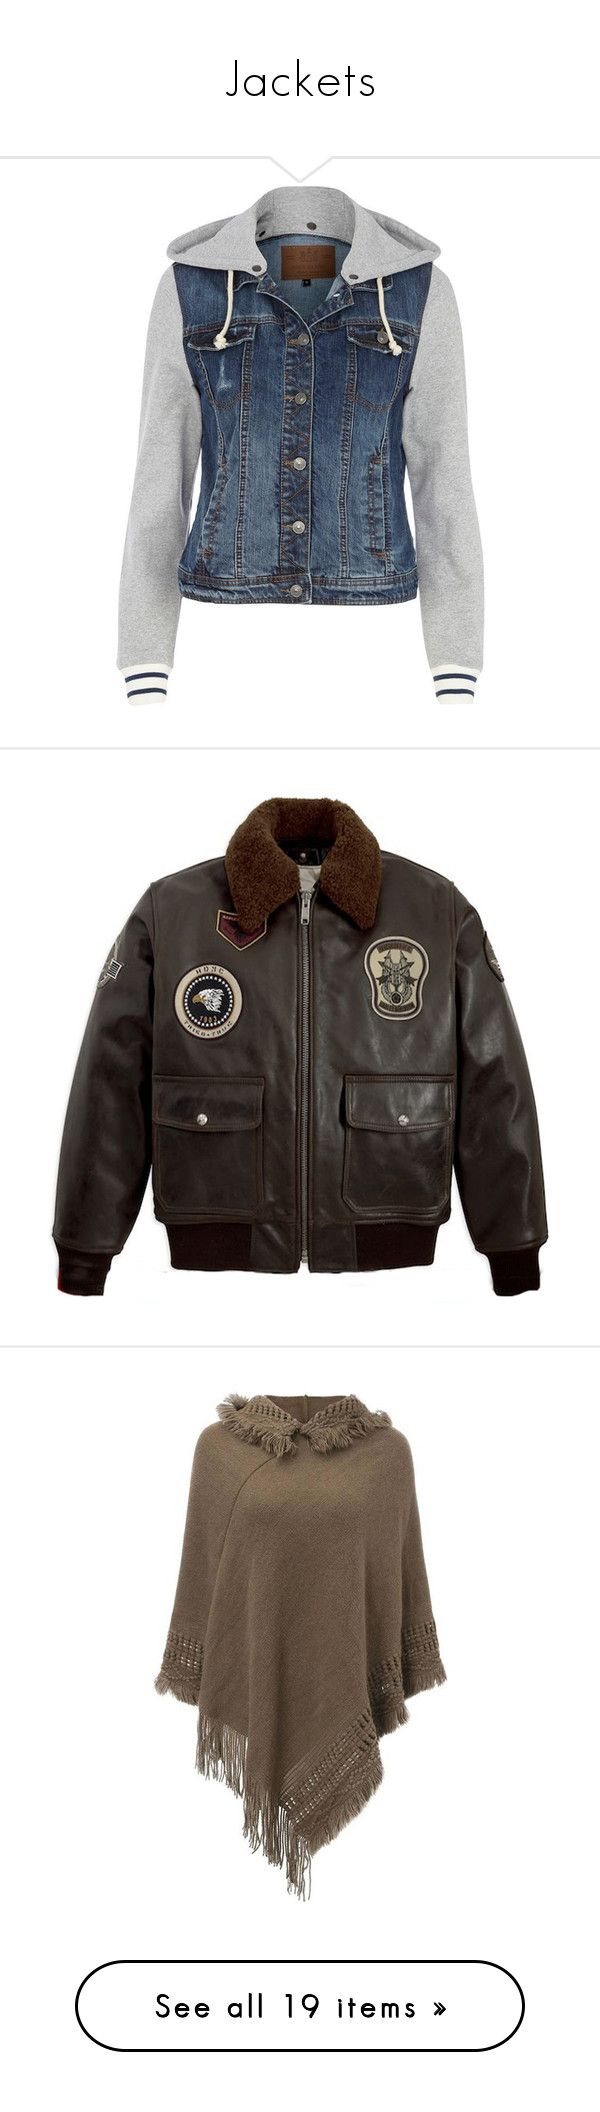 """""""Jackets"""" by shadowfang52 on Polyvore featuring outerwear, jackets, tops, coats, sale, hooded jacket, blue jackets, river island jackets, jersey jacket and blue jean jacket"""